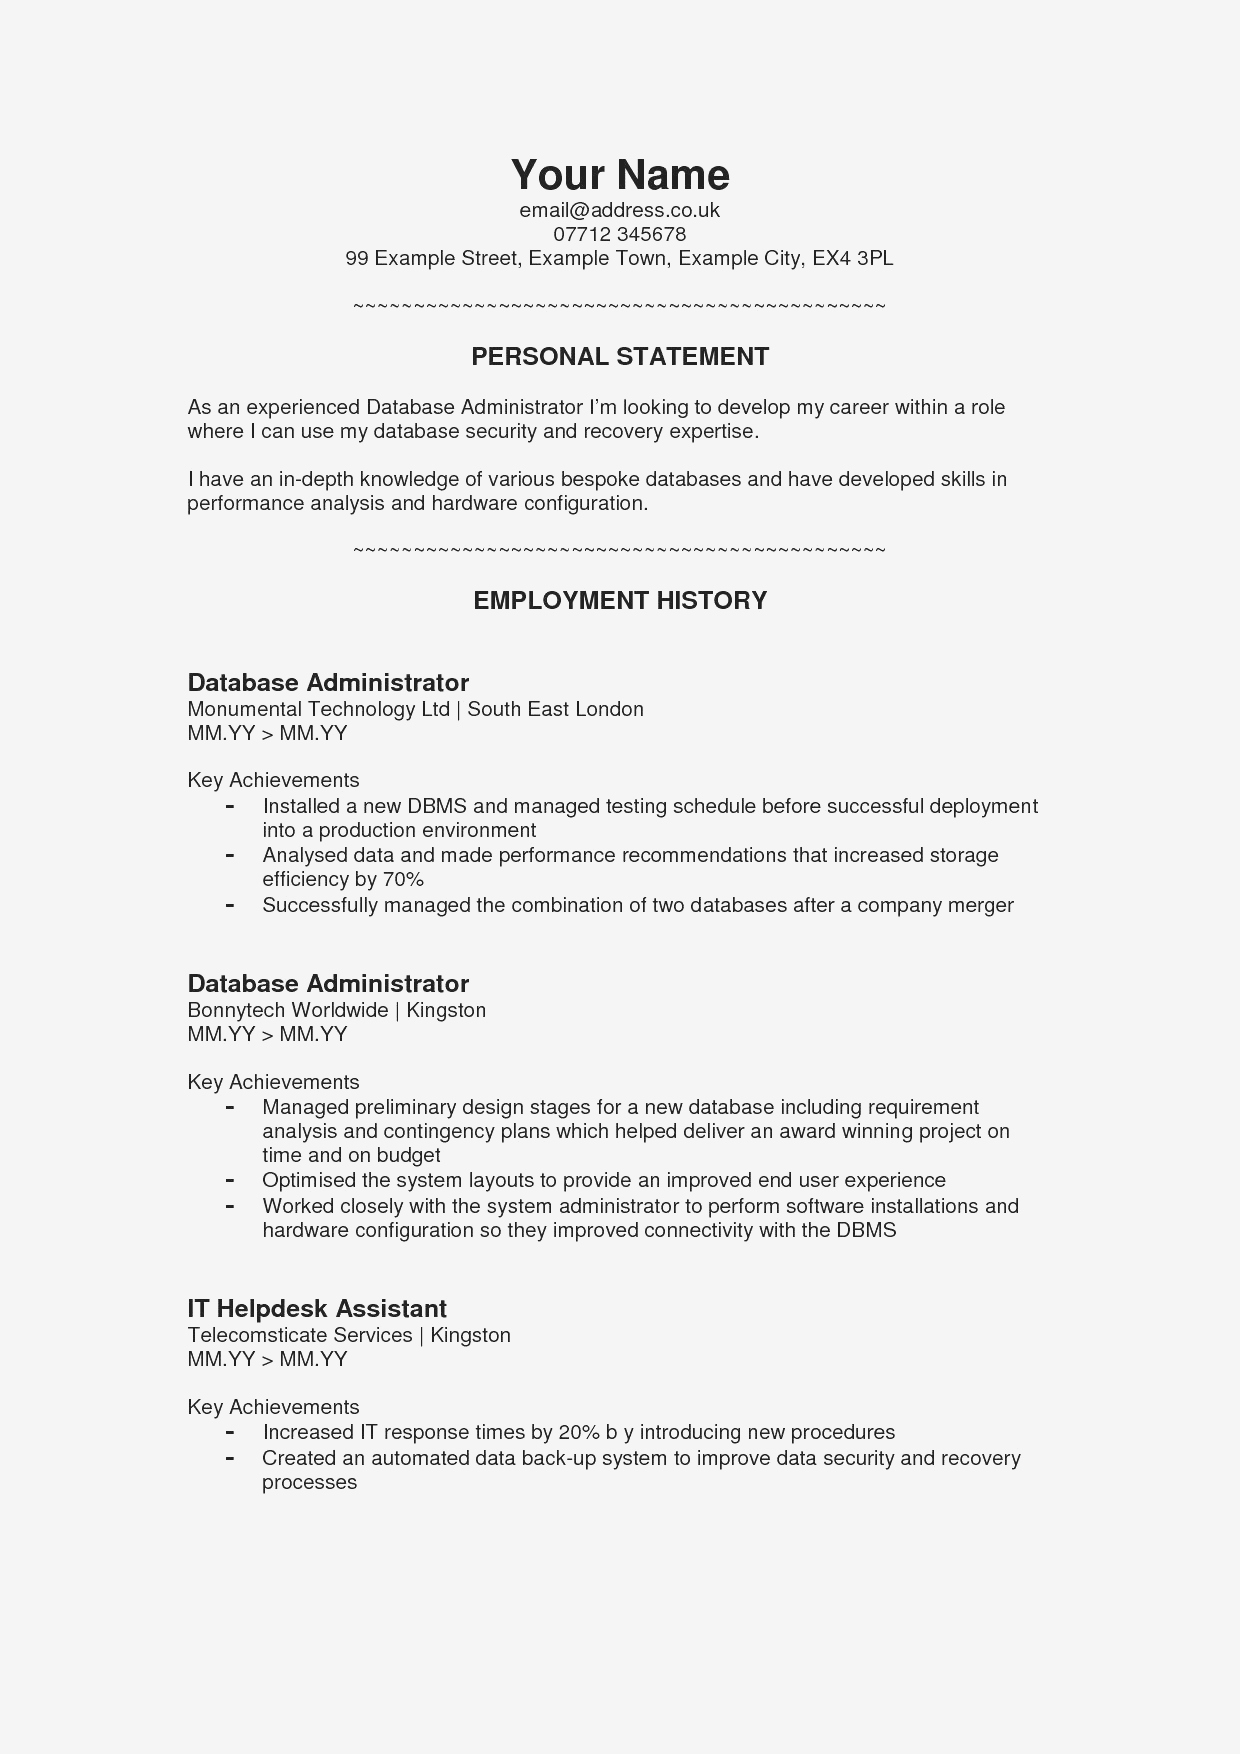 Resume Personal Statement - Sample Resume Personal Statement